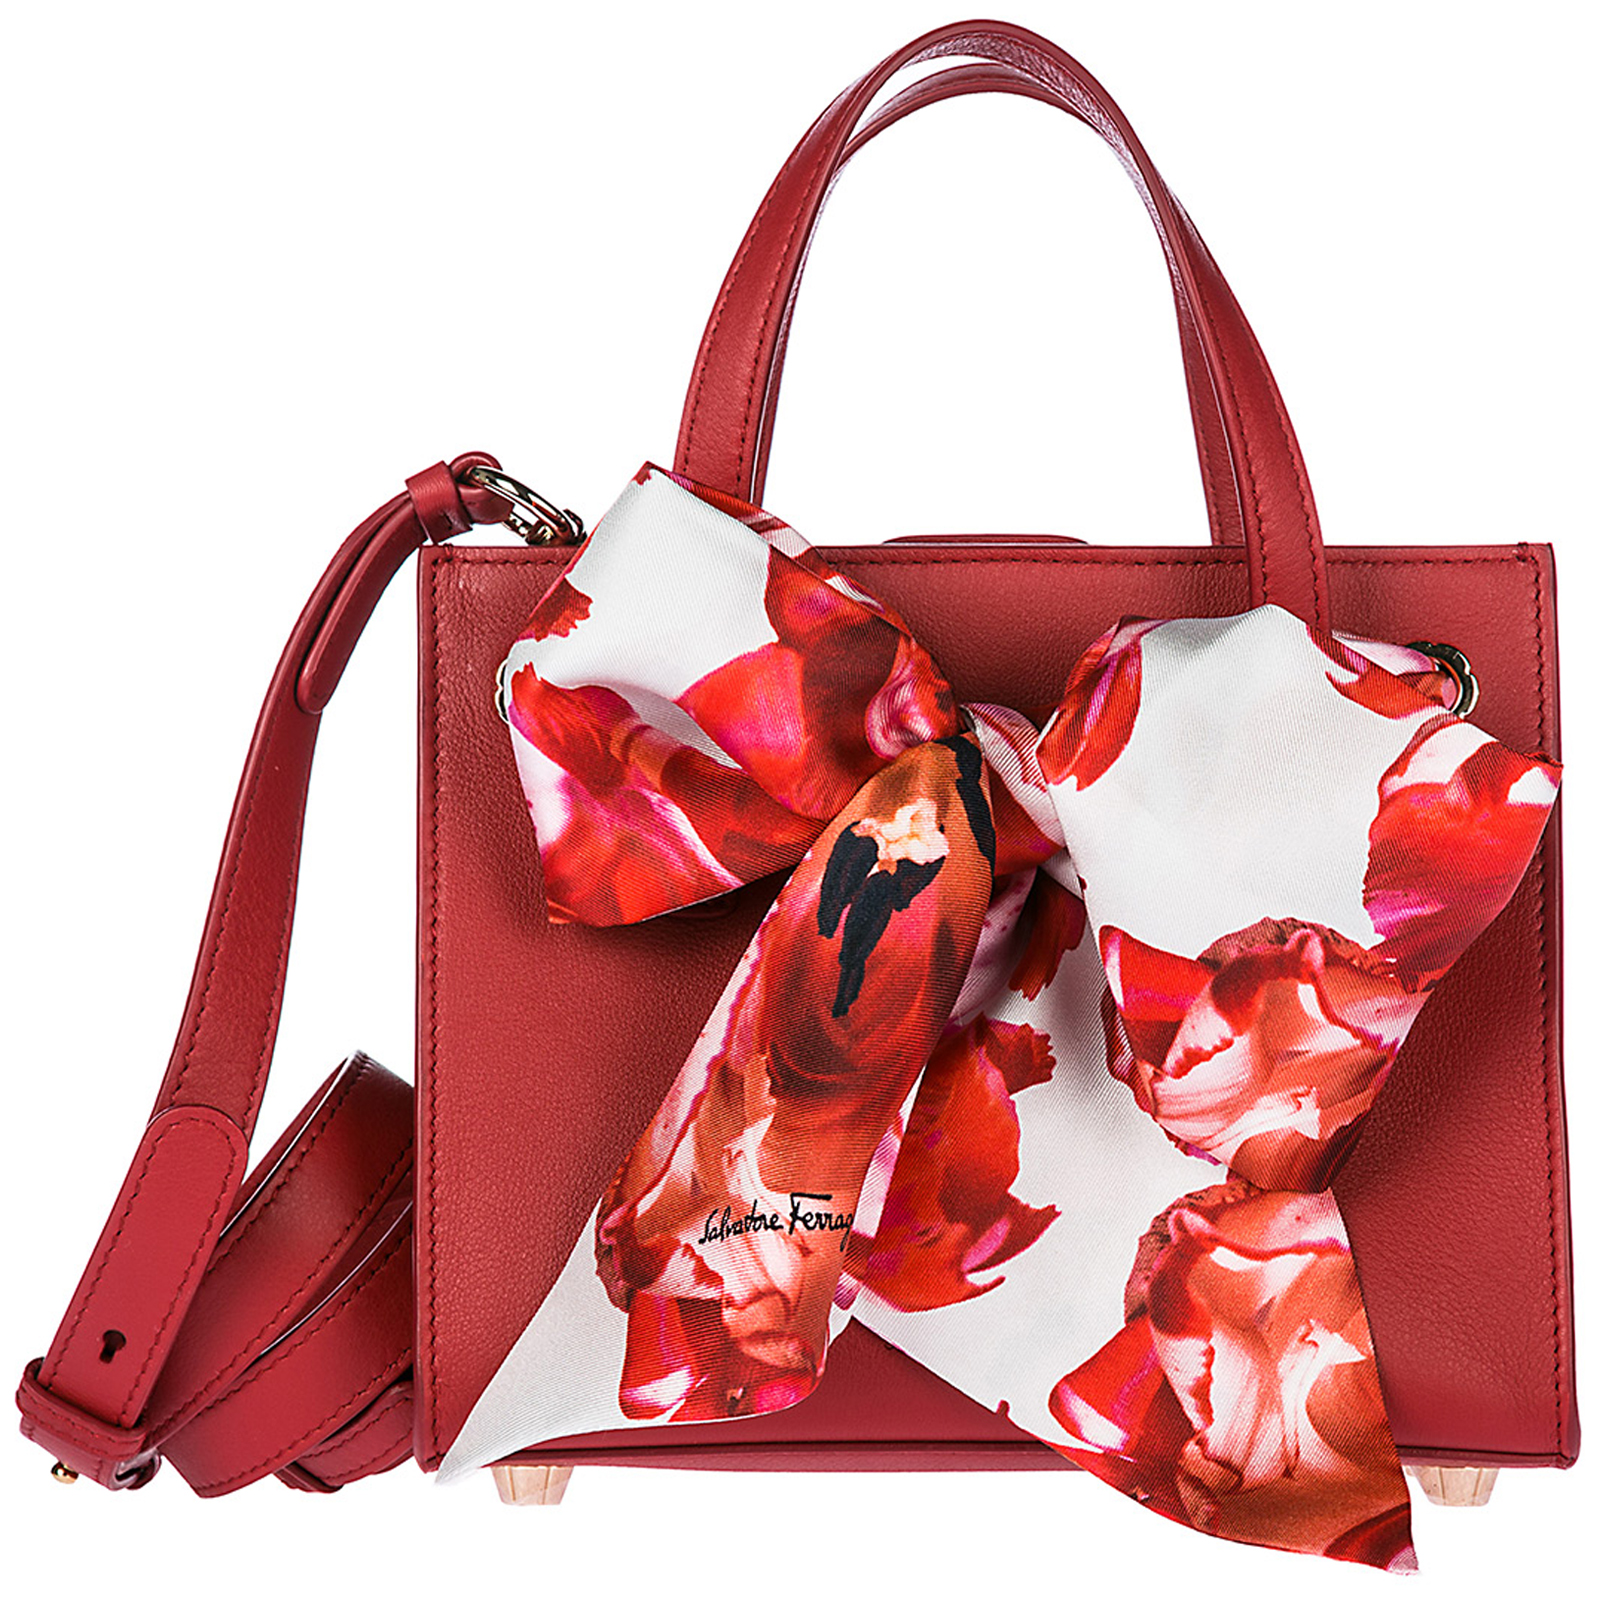 Borsa donna a mano shopping in pelle tote foulard